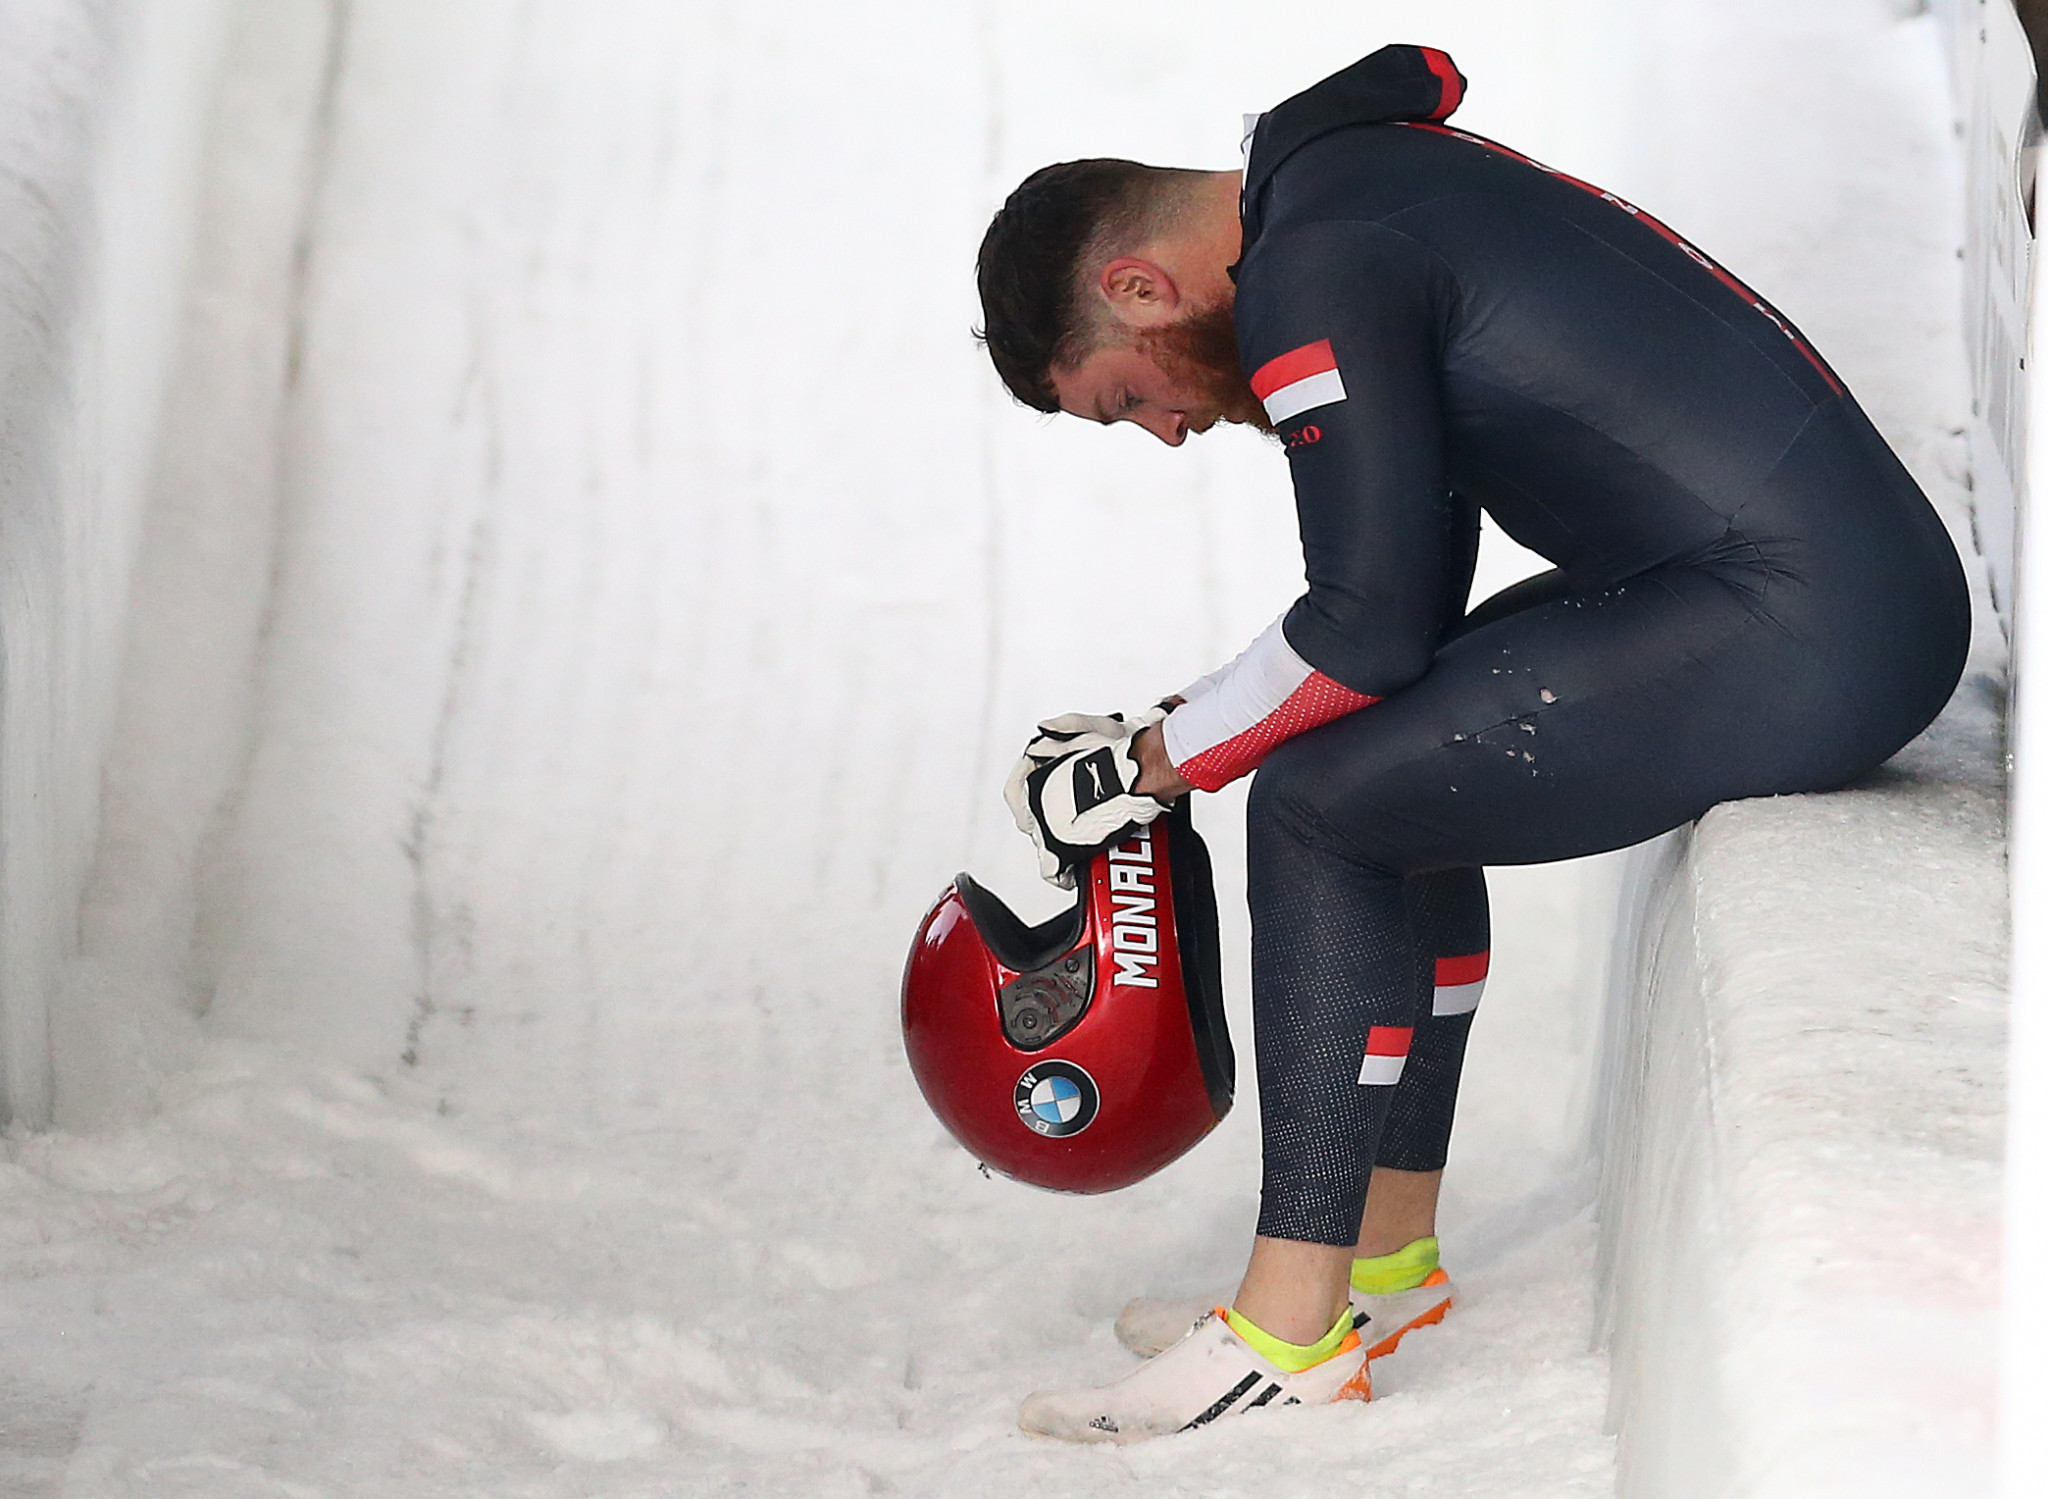 Monaco led at the halfway stage of the men's four-man bobsleigh but crashed on the second run ©Getty Images